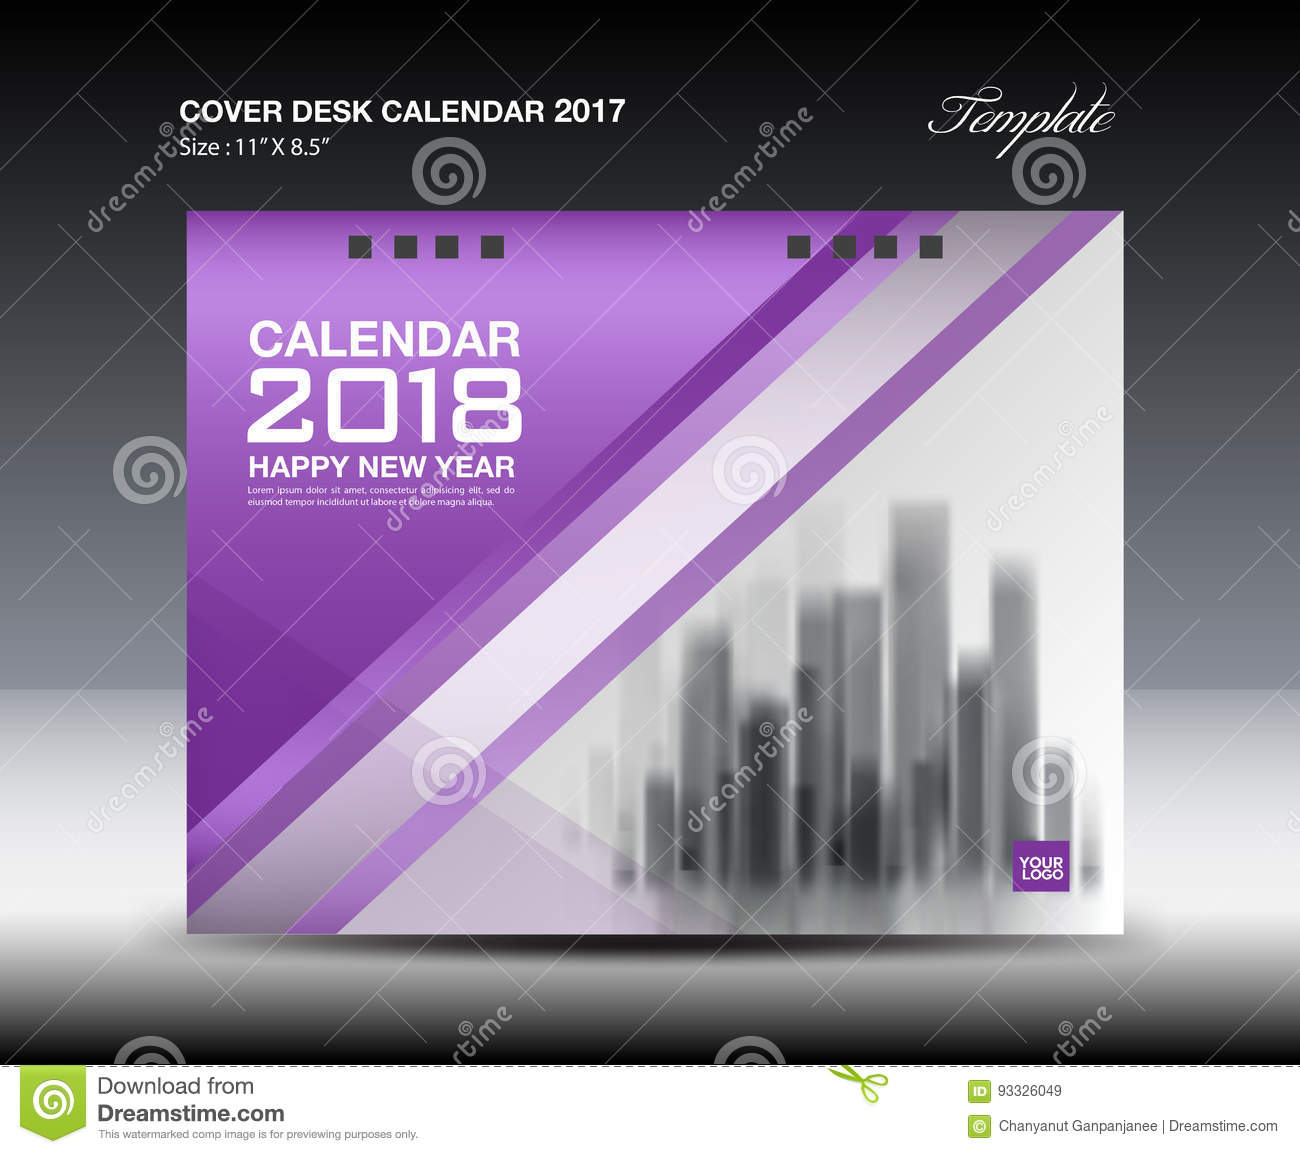 Calendar Cover 2018 : Purple cover desk calendar design business brochure